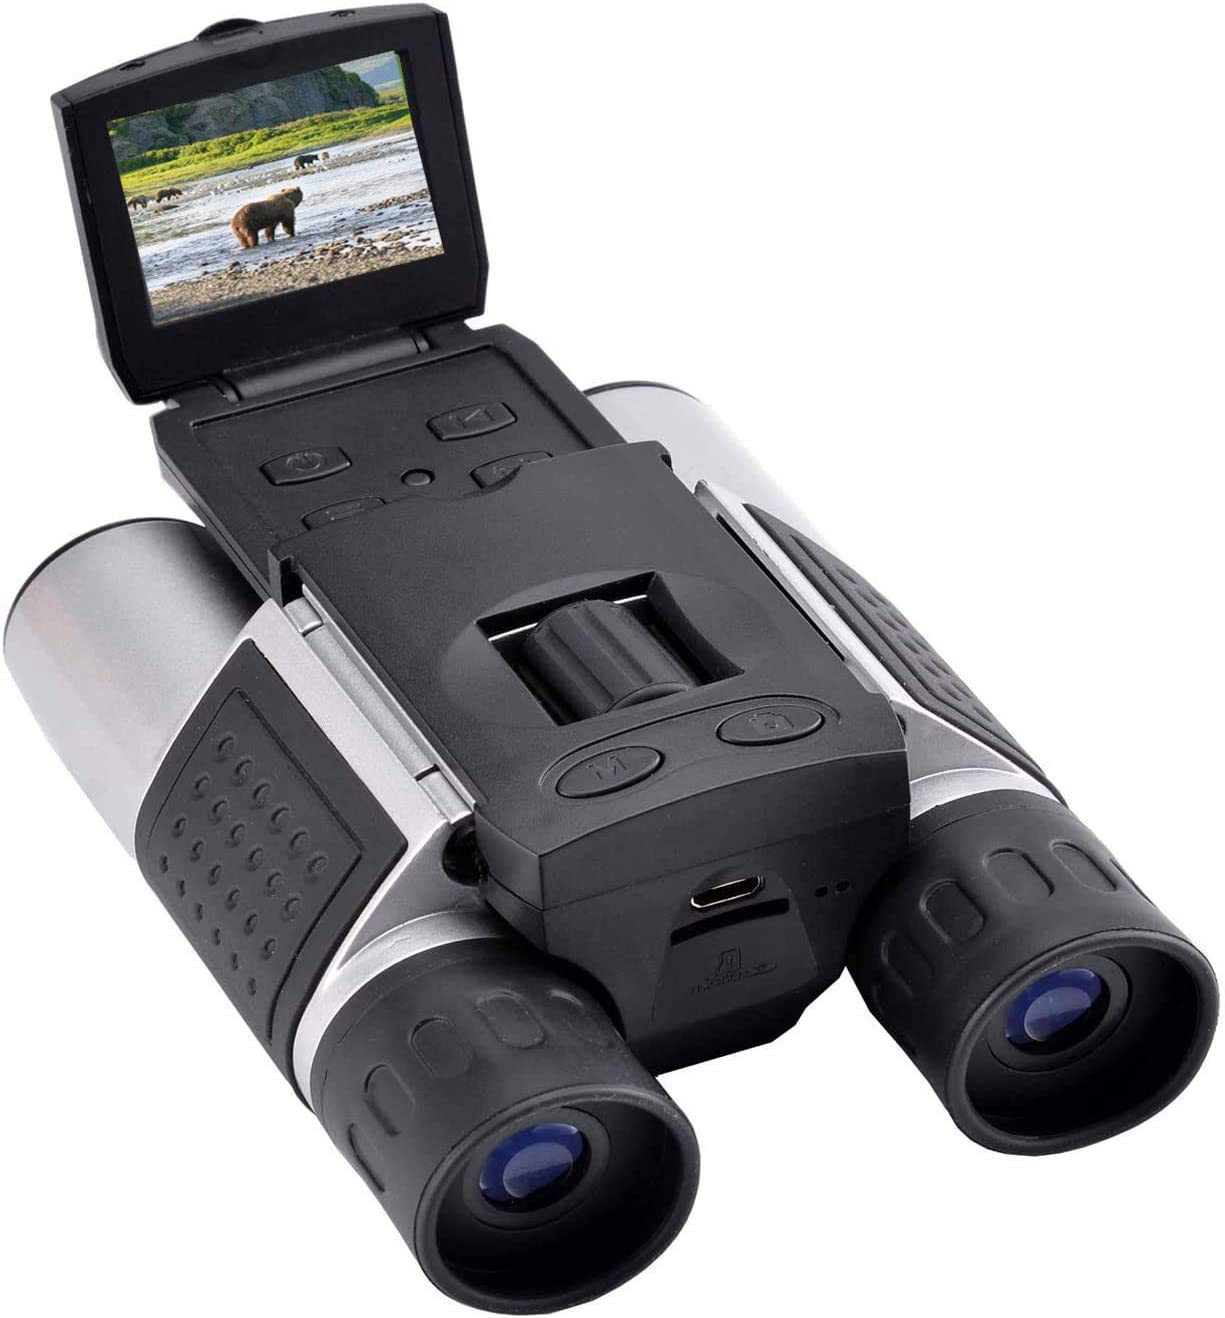 """Vazussk 1.5"""" LCD Digital Binoculars with Camera for Adults, 10x25 Video Photo Recoder for Bird Watching Hunting Concerts and Sports Game with 16GB Cards : Camera & Photo"""